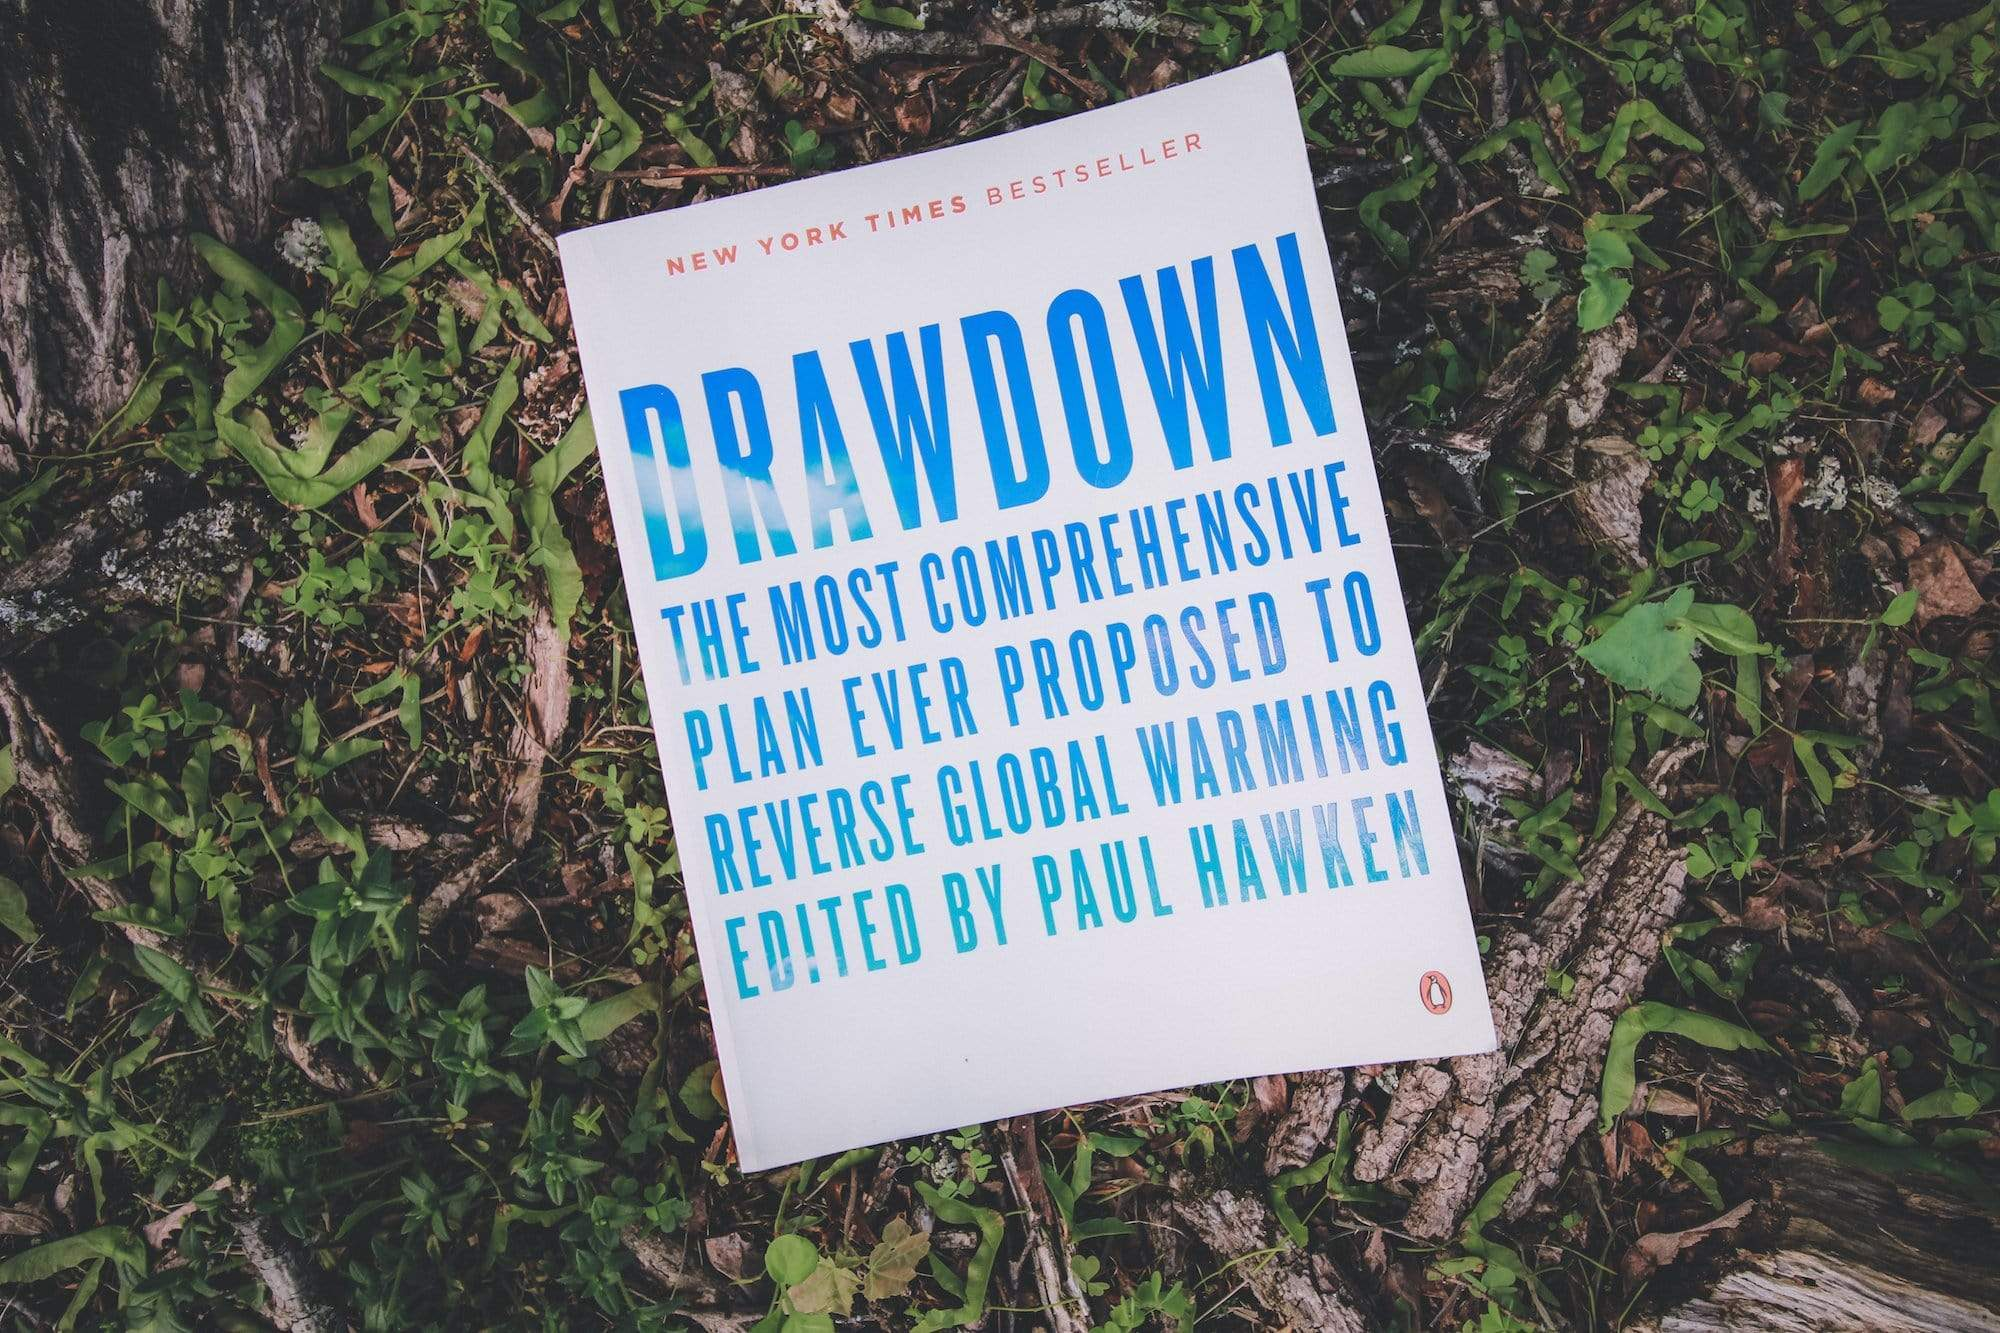 Drawdown book cover on grass in forest